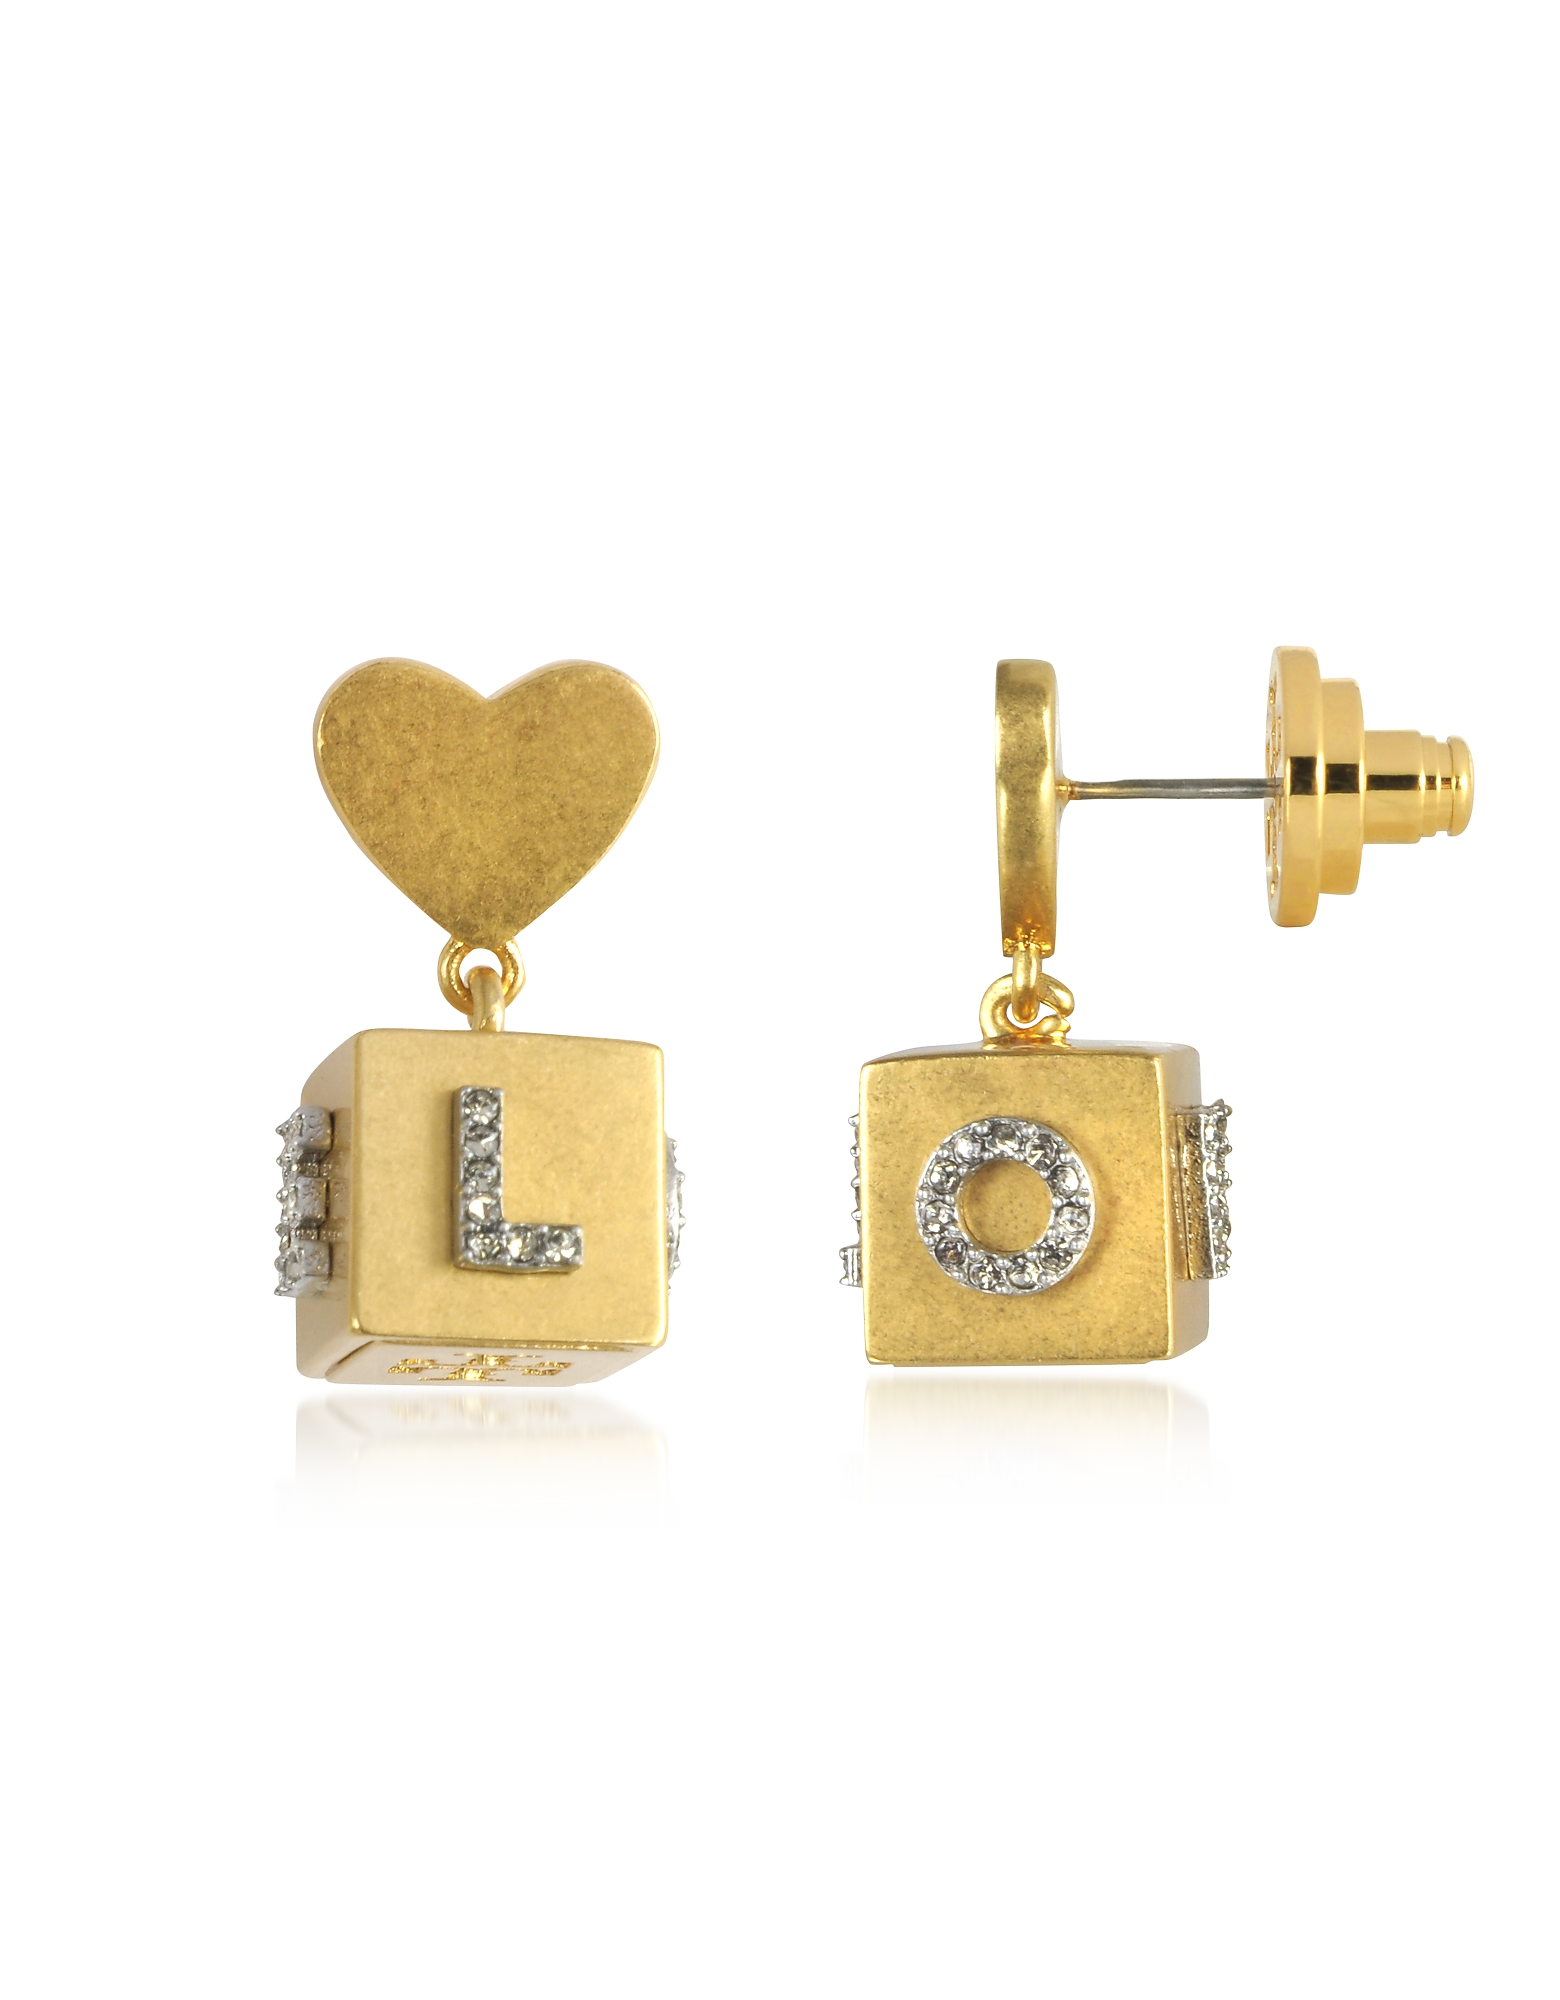 Tory Burch Earrings, Love Message Cube Drop Earrings